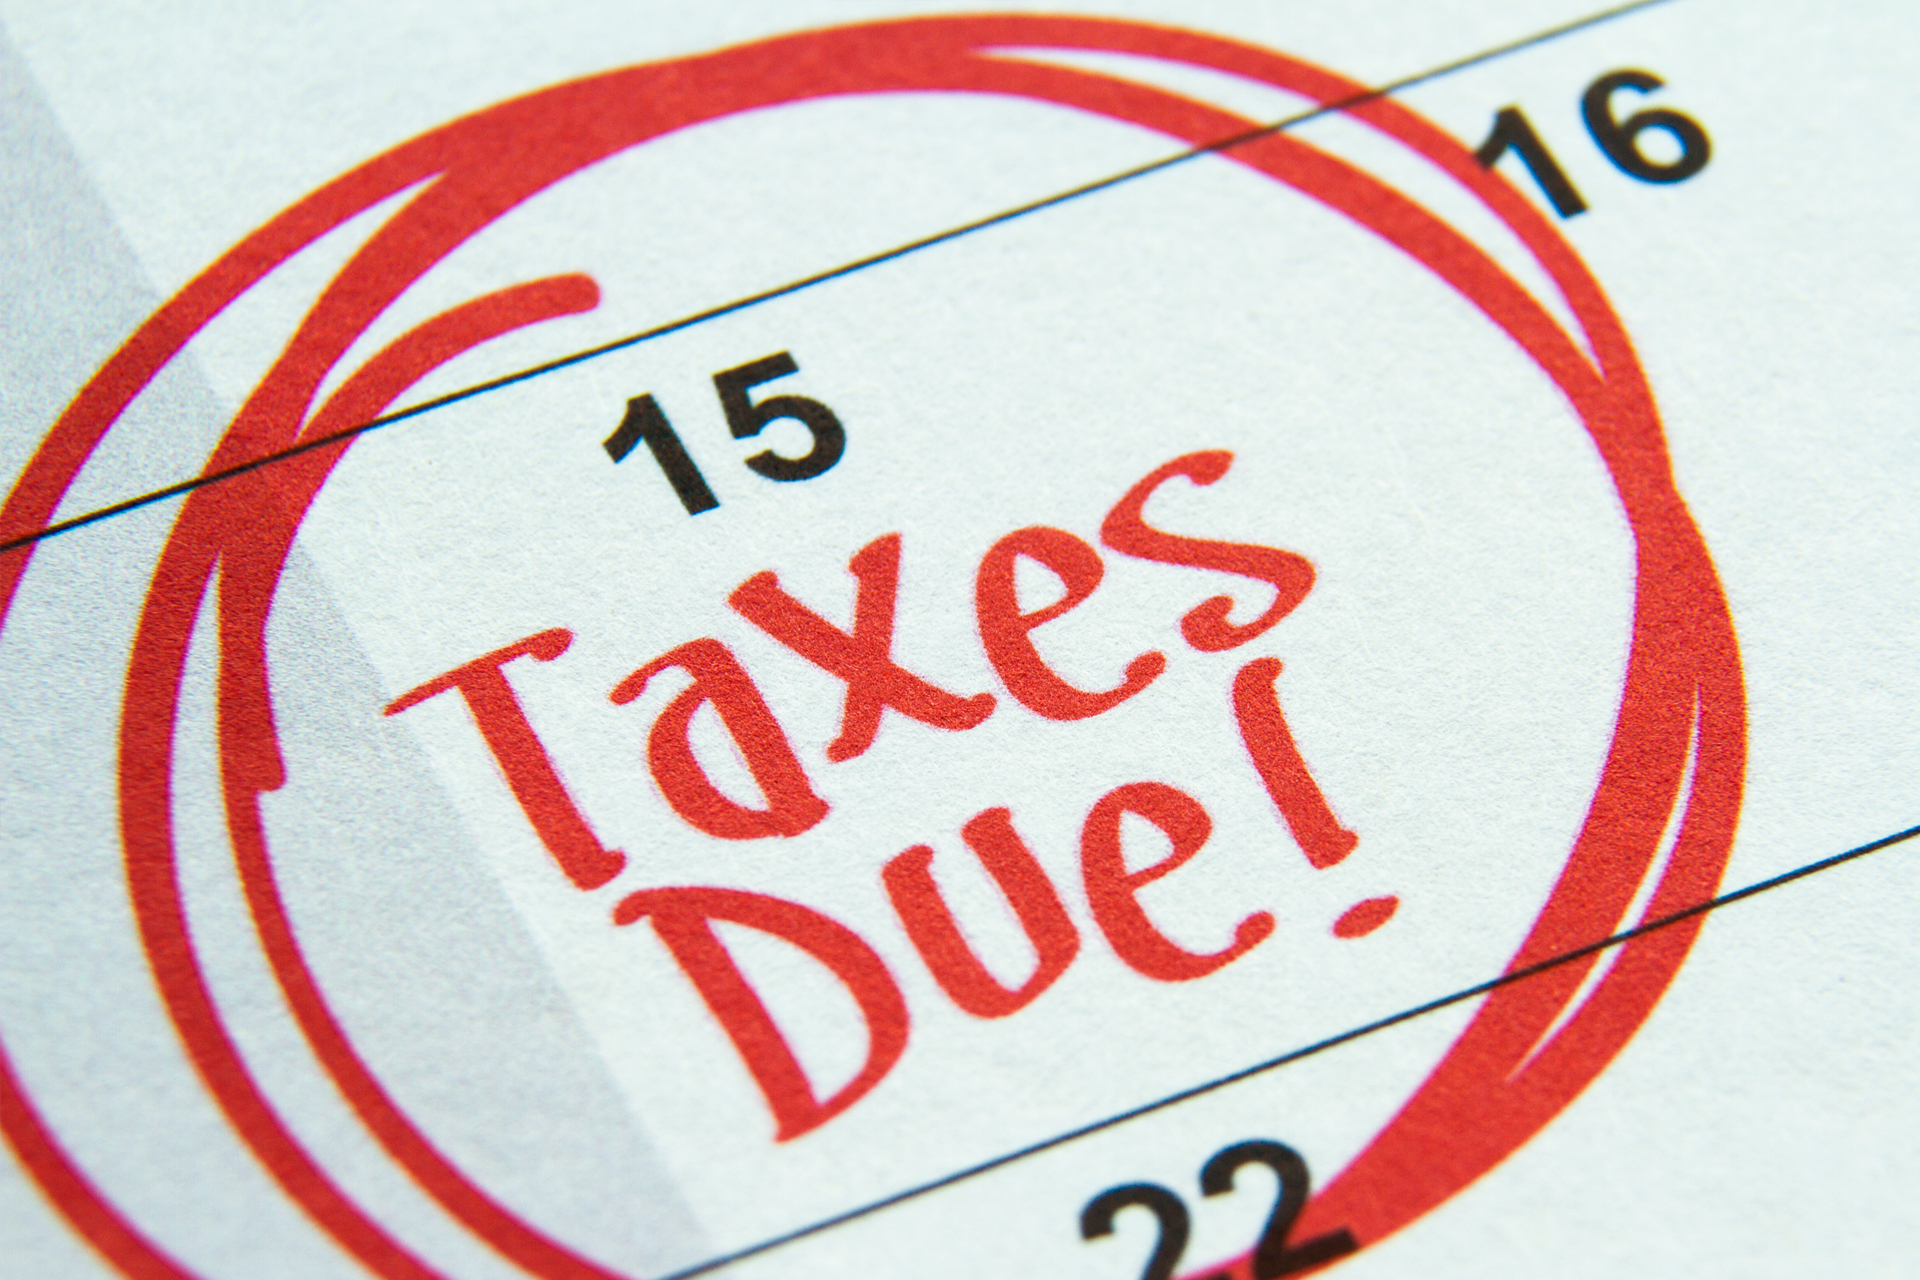 STILL TIME TO FILE FOR PERSONAL & BUSINESS TAX EXTENSIONS